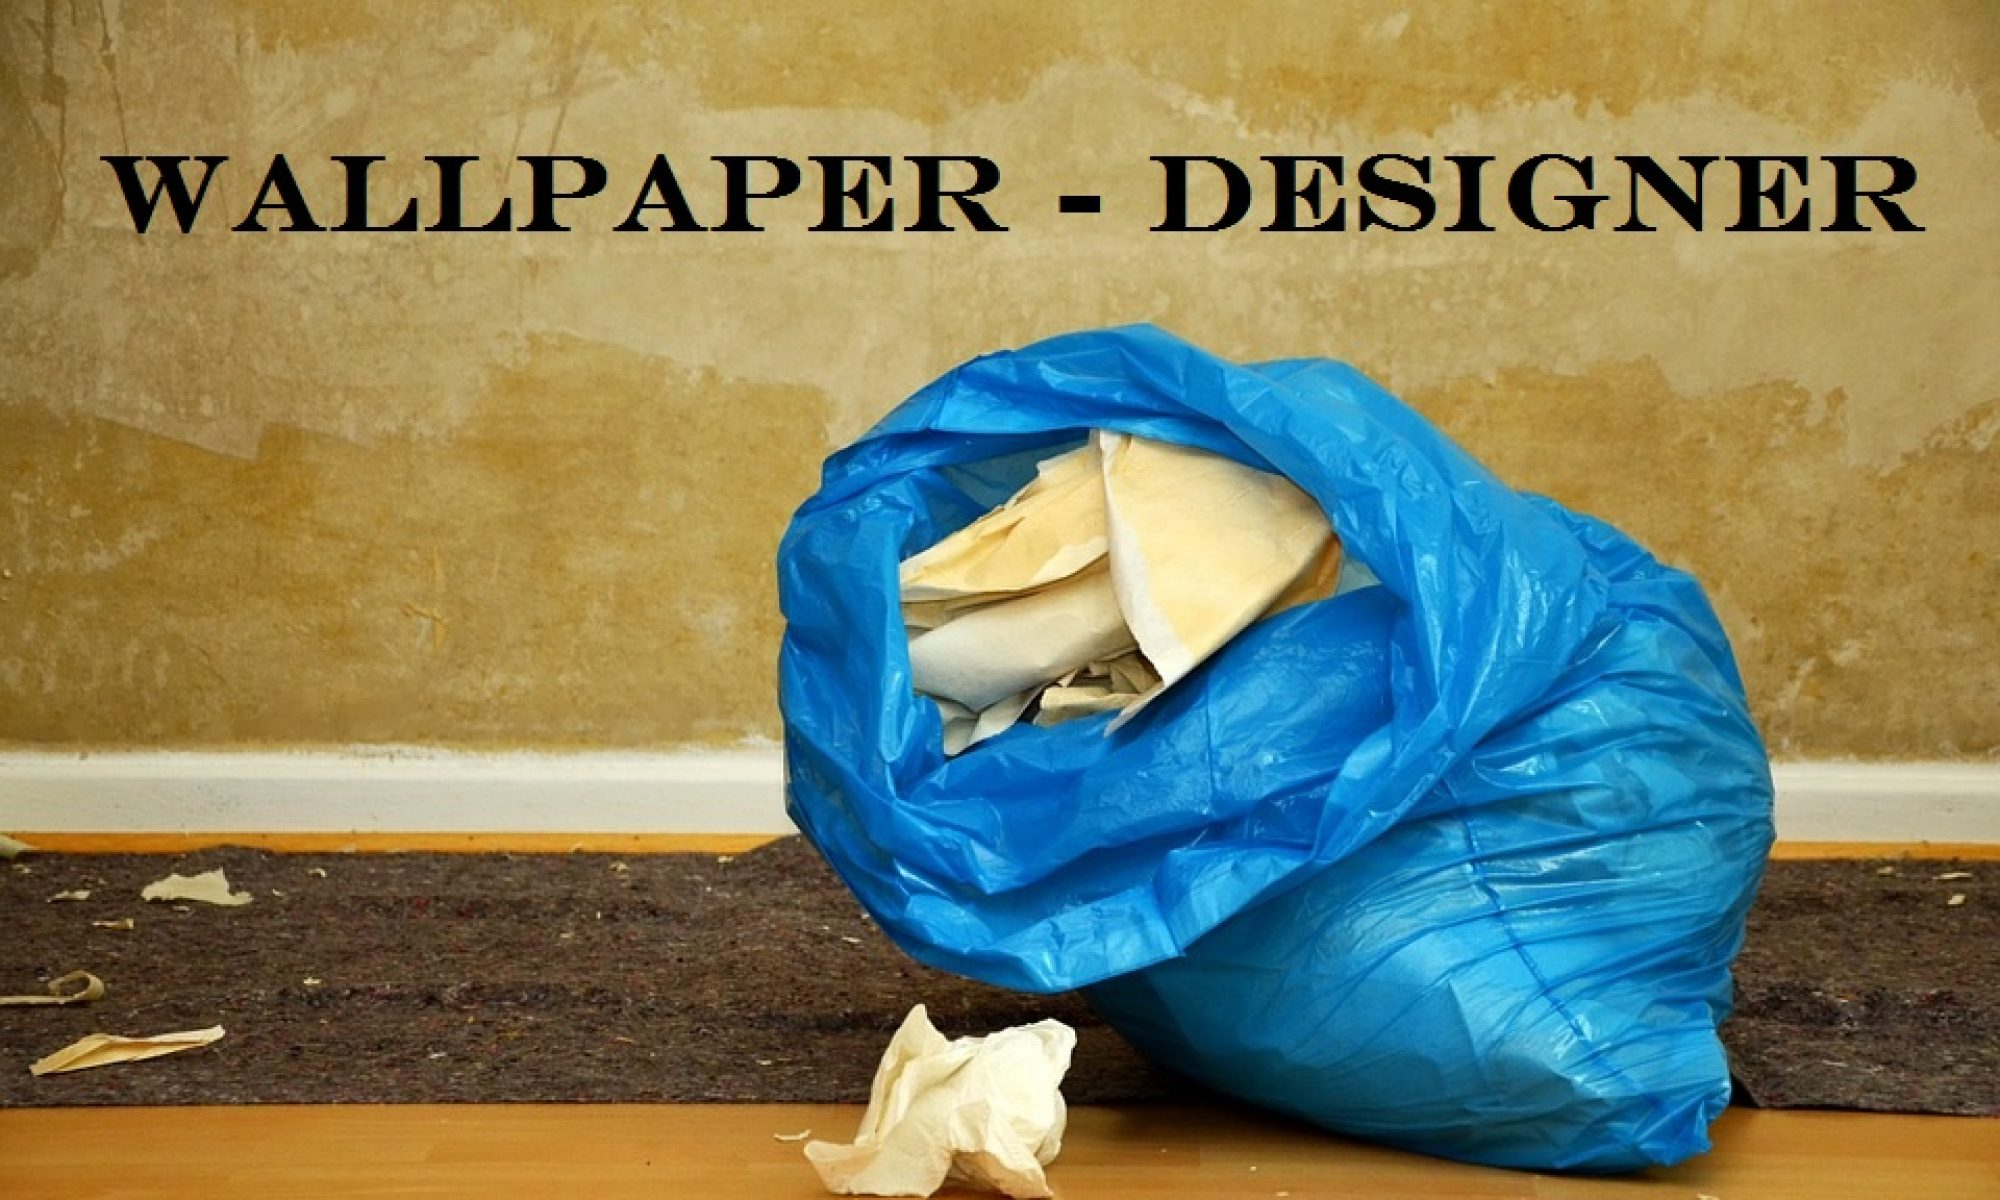 wallpaper-designer.com